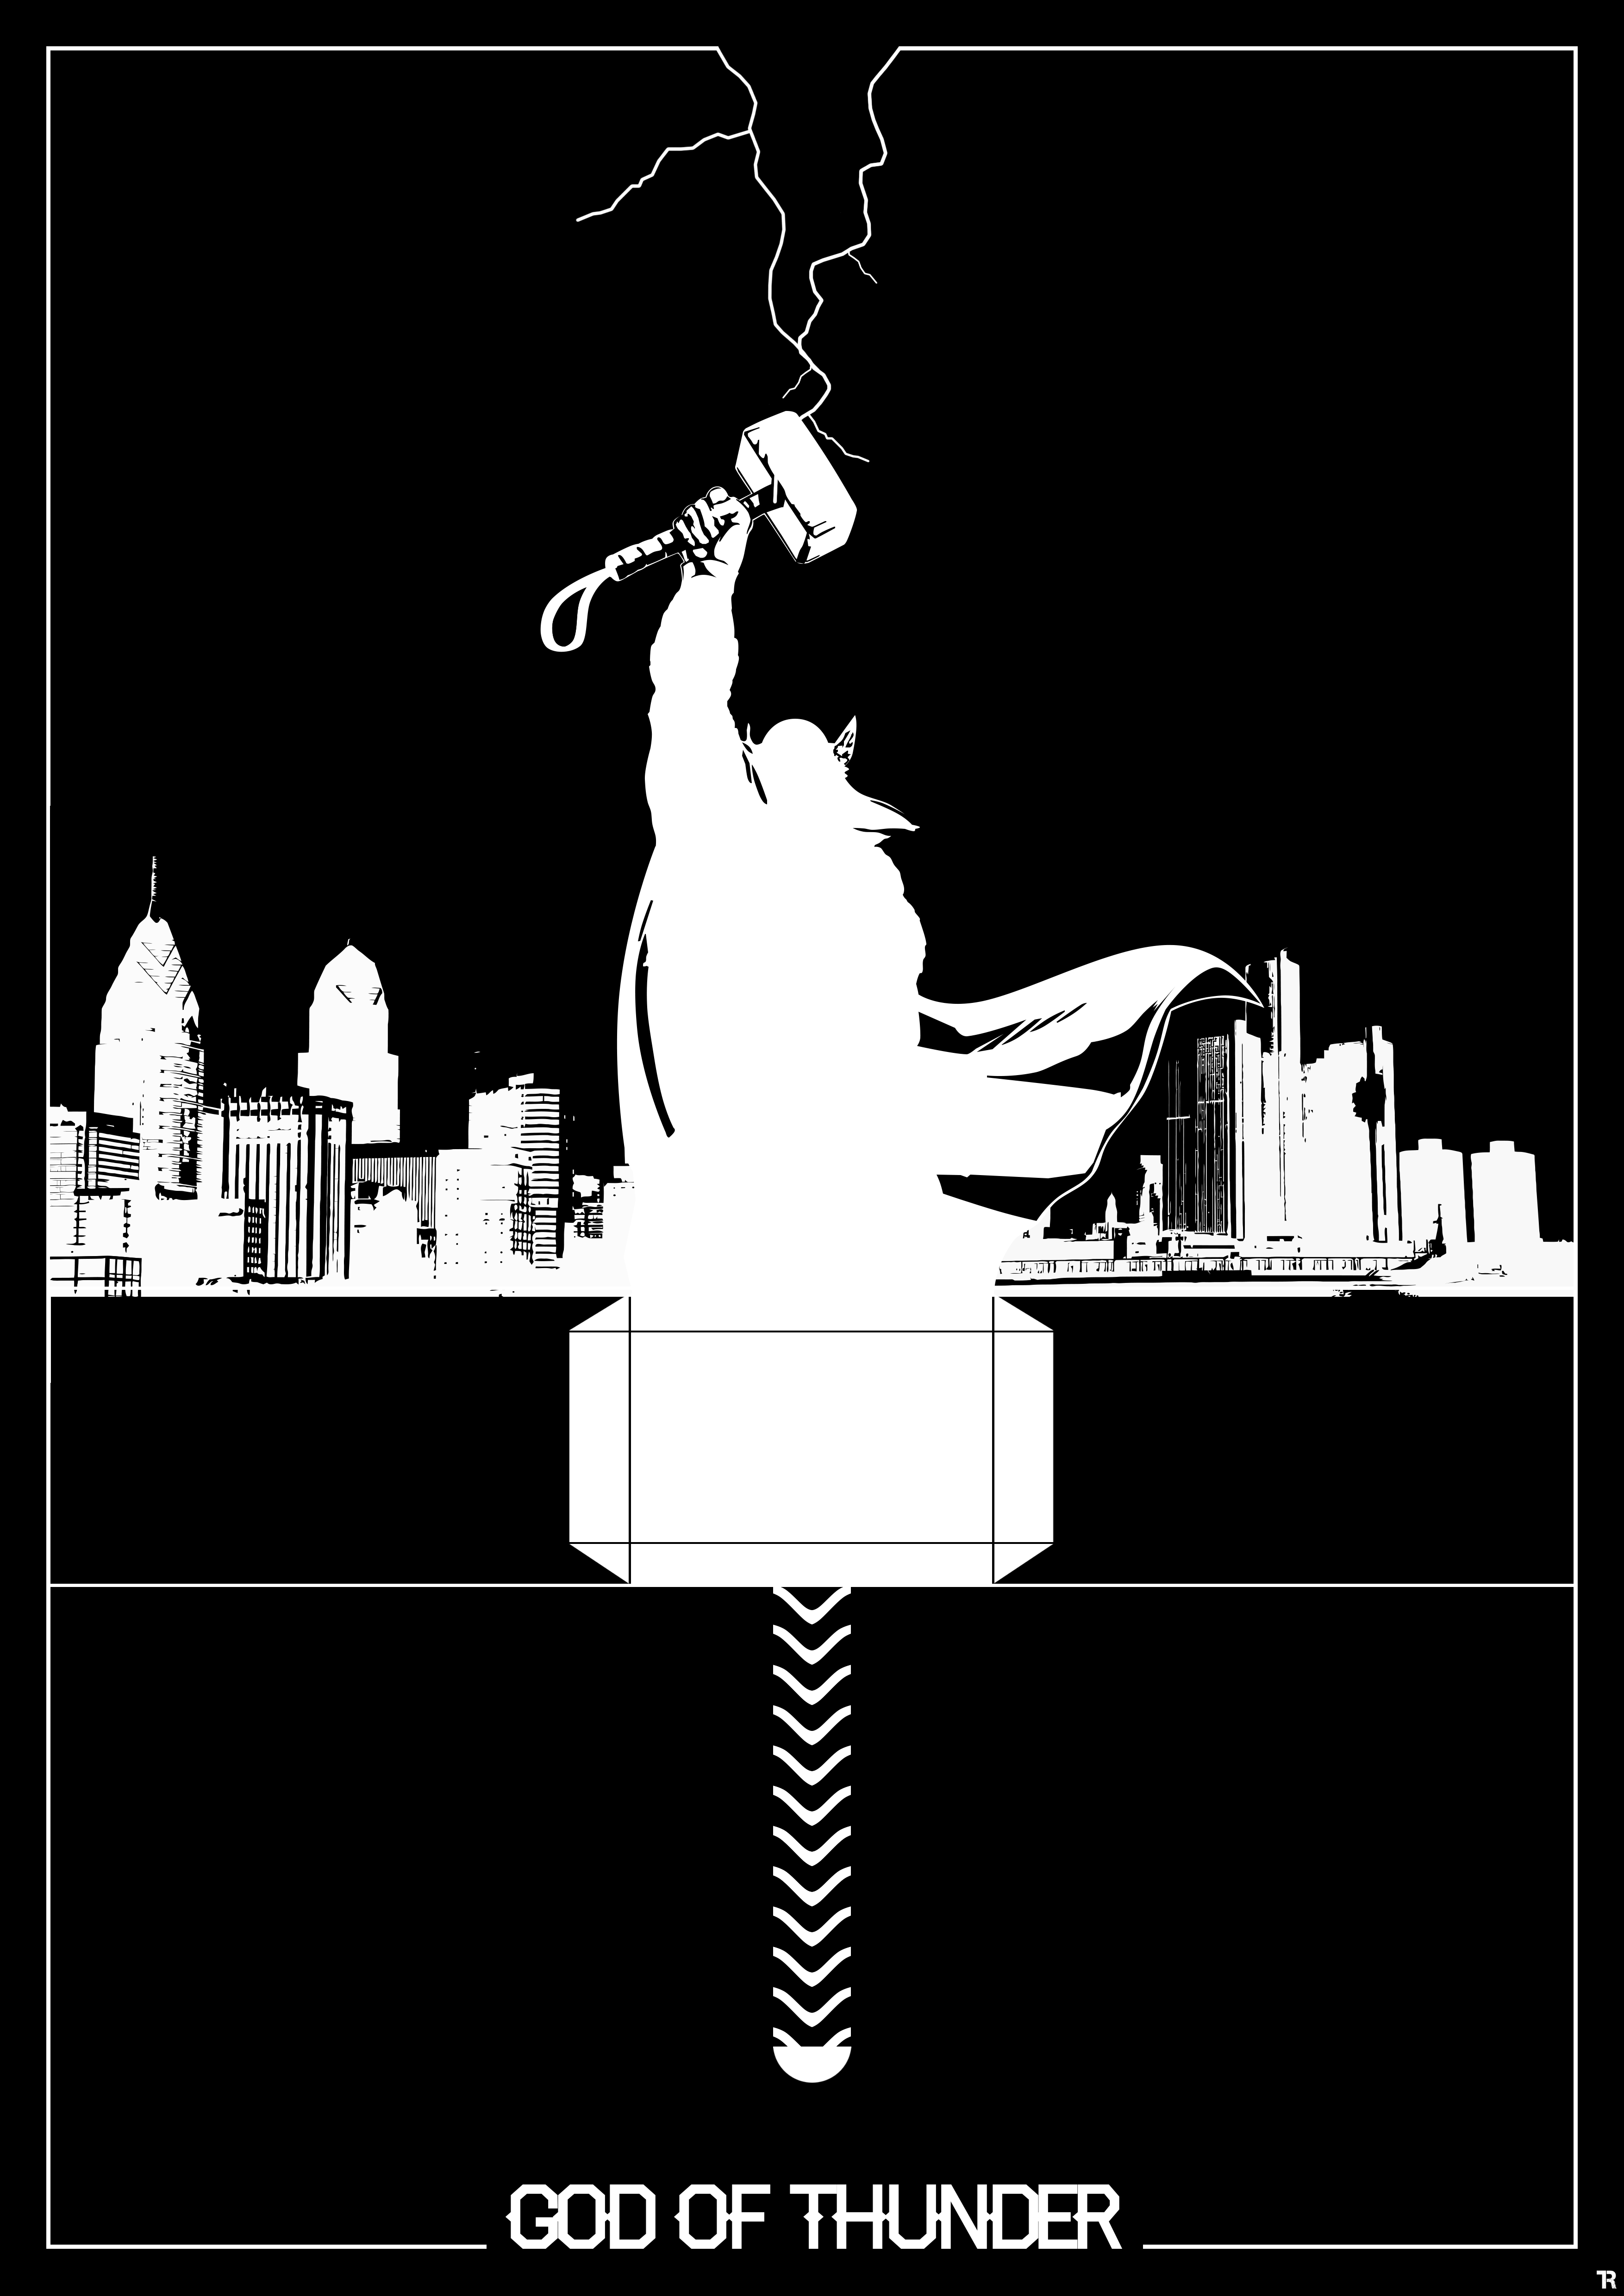 Thor Silhouette in Black and White by R0mainT on DeviantArt